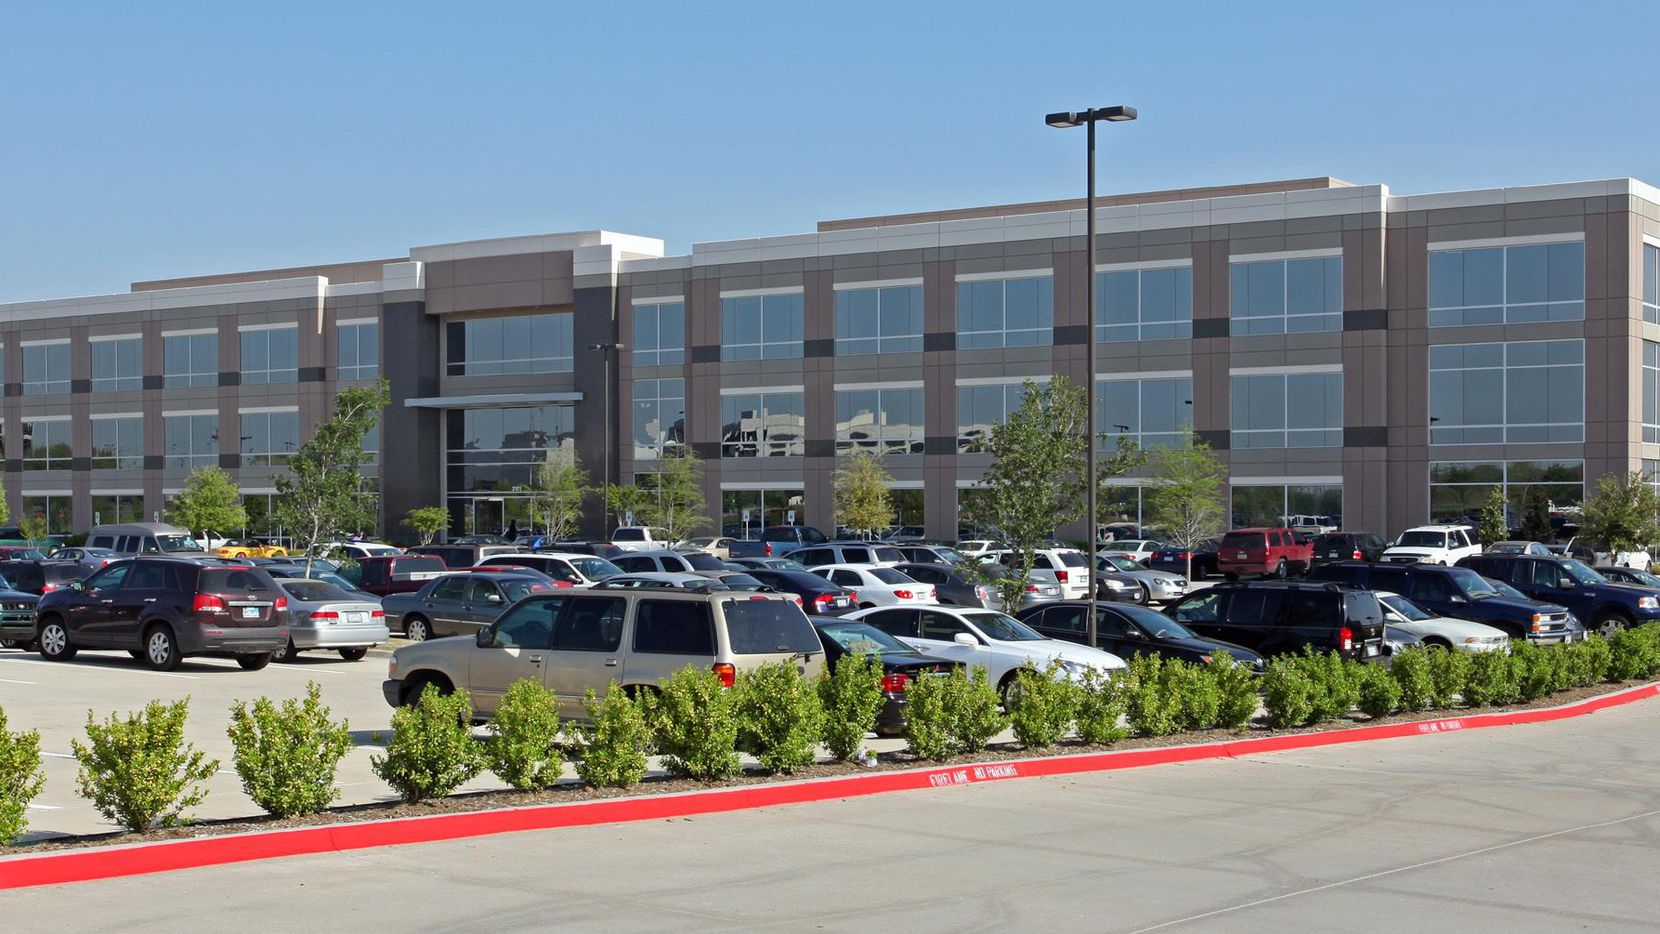 Top Exeter Finance 222 W Las Colinas Blvd Irving Tx Pictures